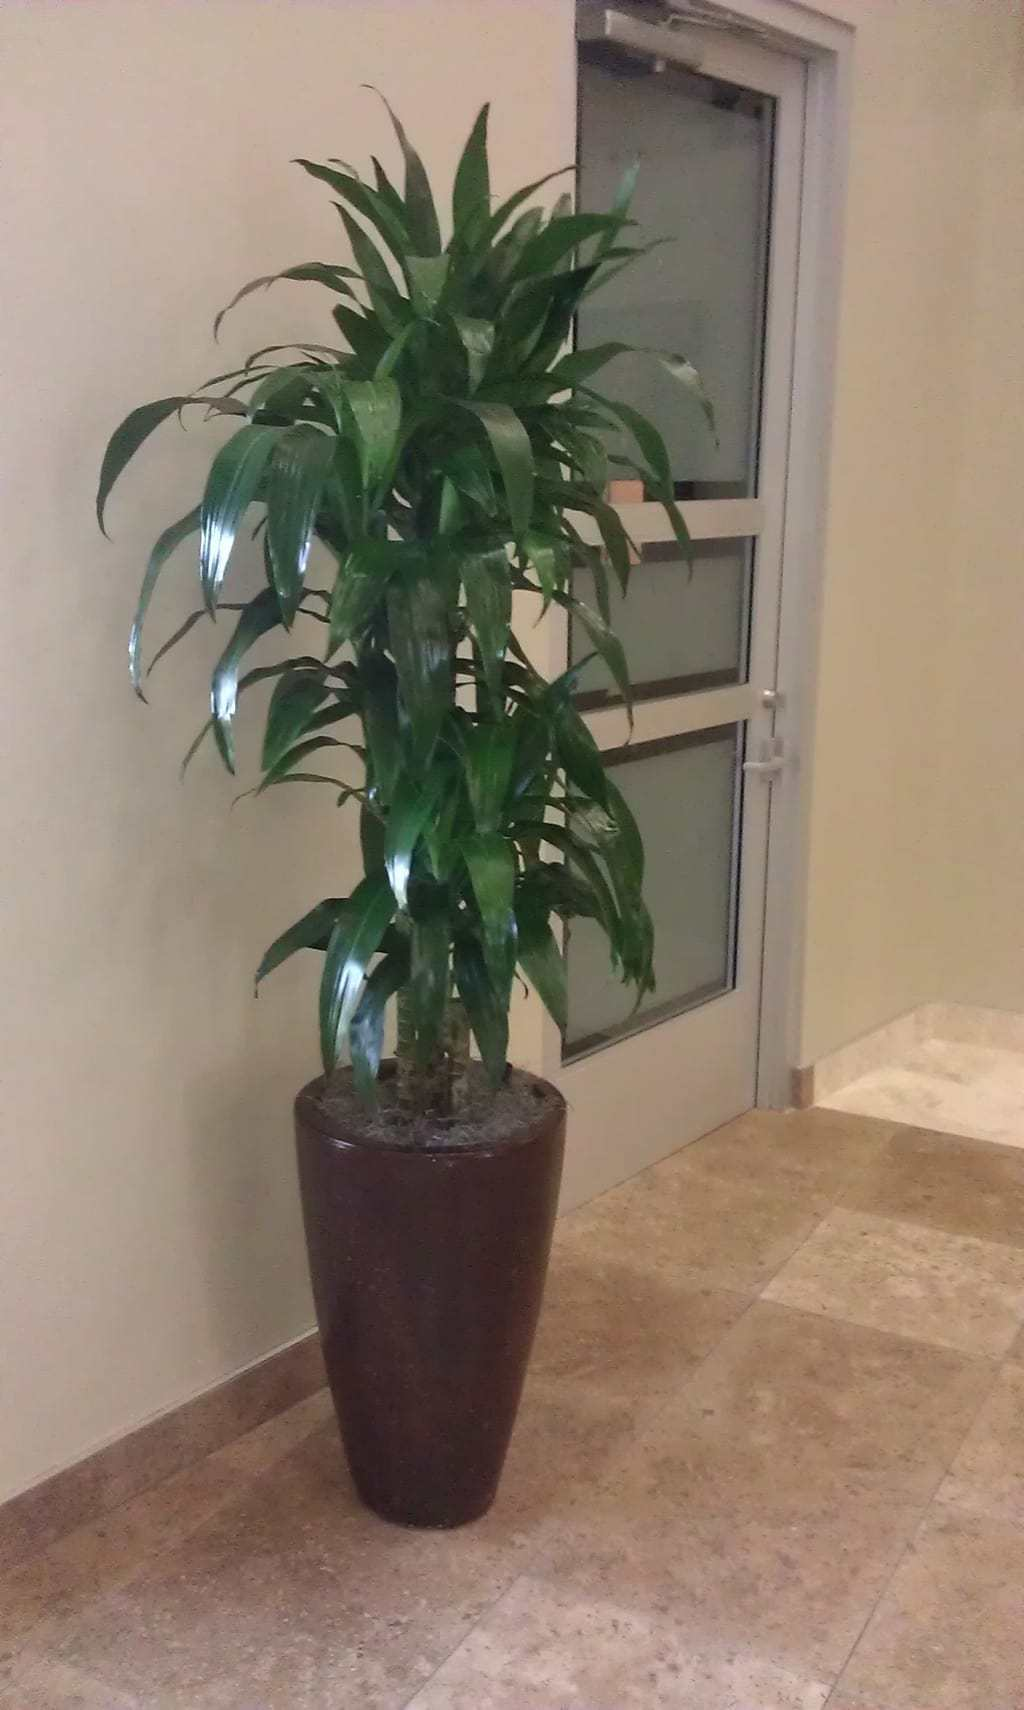 Wellesley Interior Landscaping And Office Plant Company Envirogreenery Plants